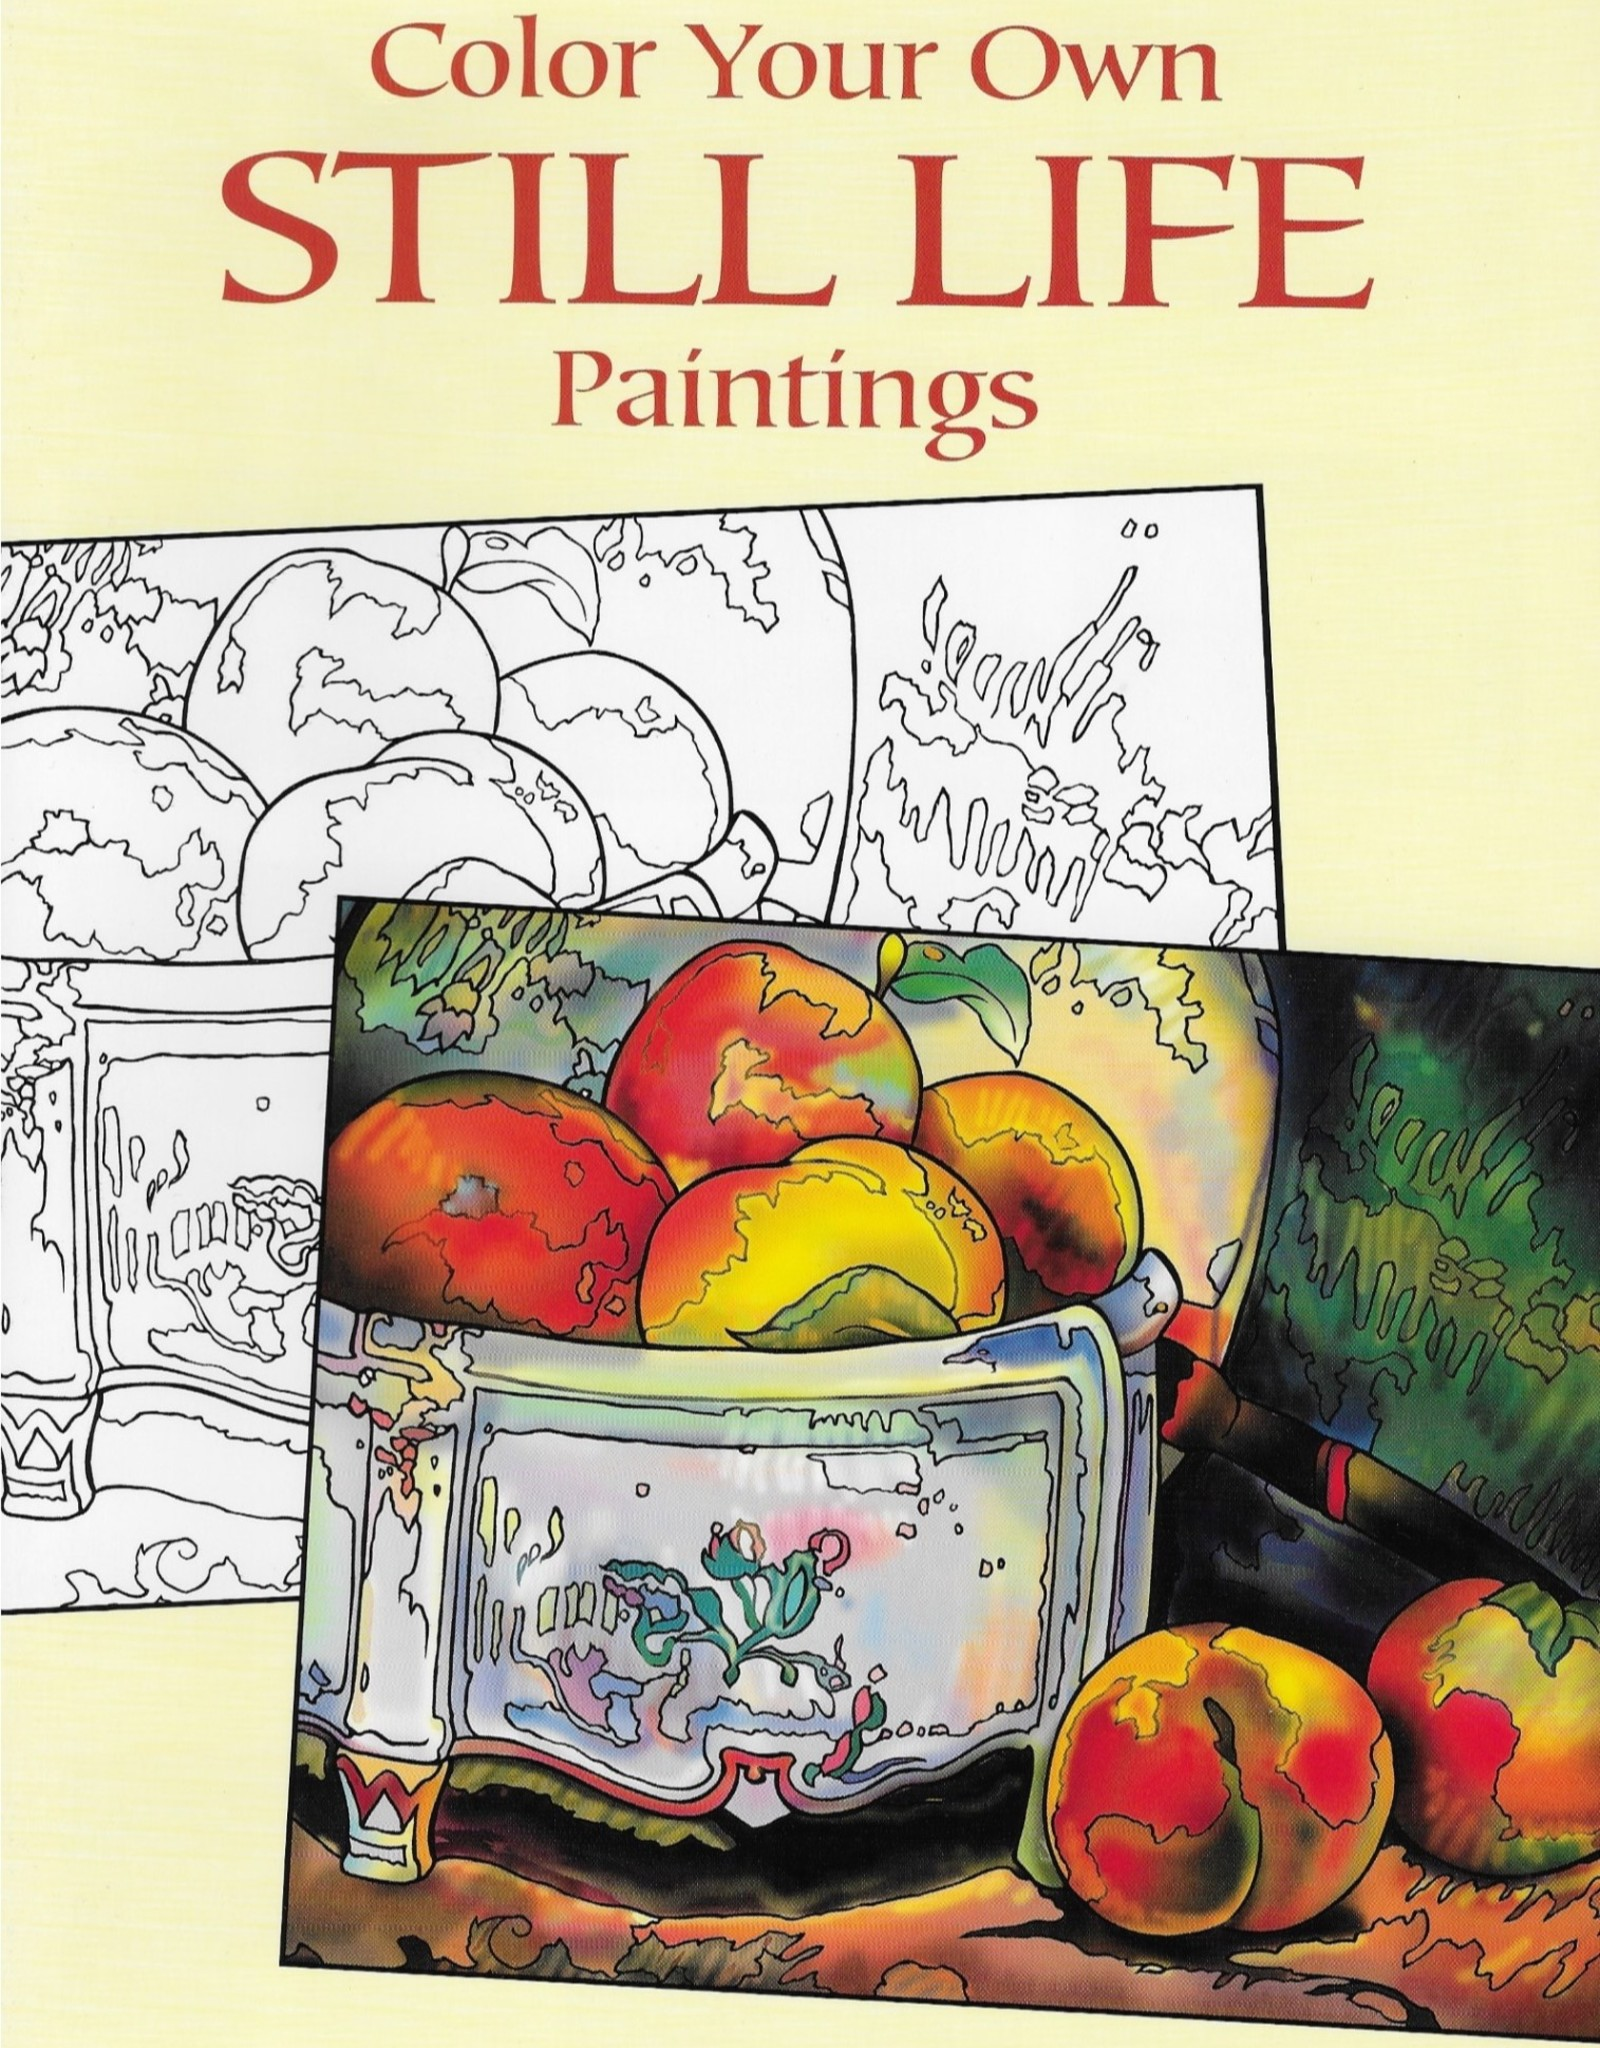 Color Your Own STILL LIFE Paintings, Coloring Book